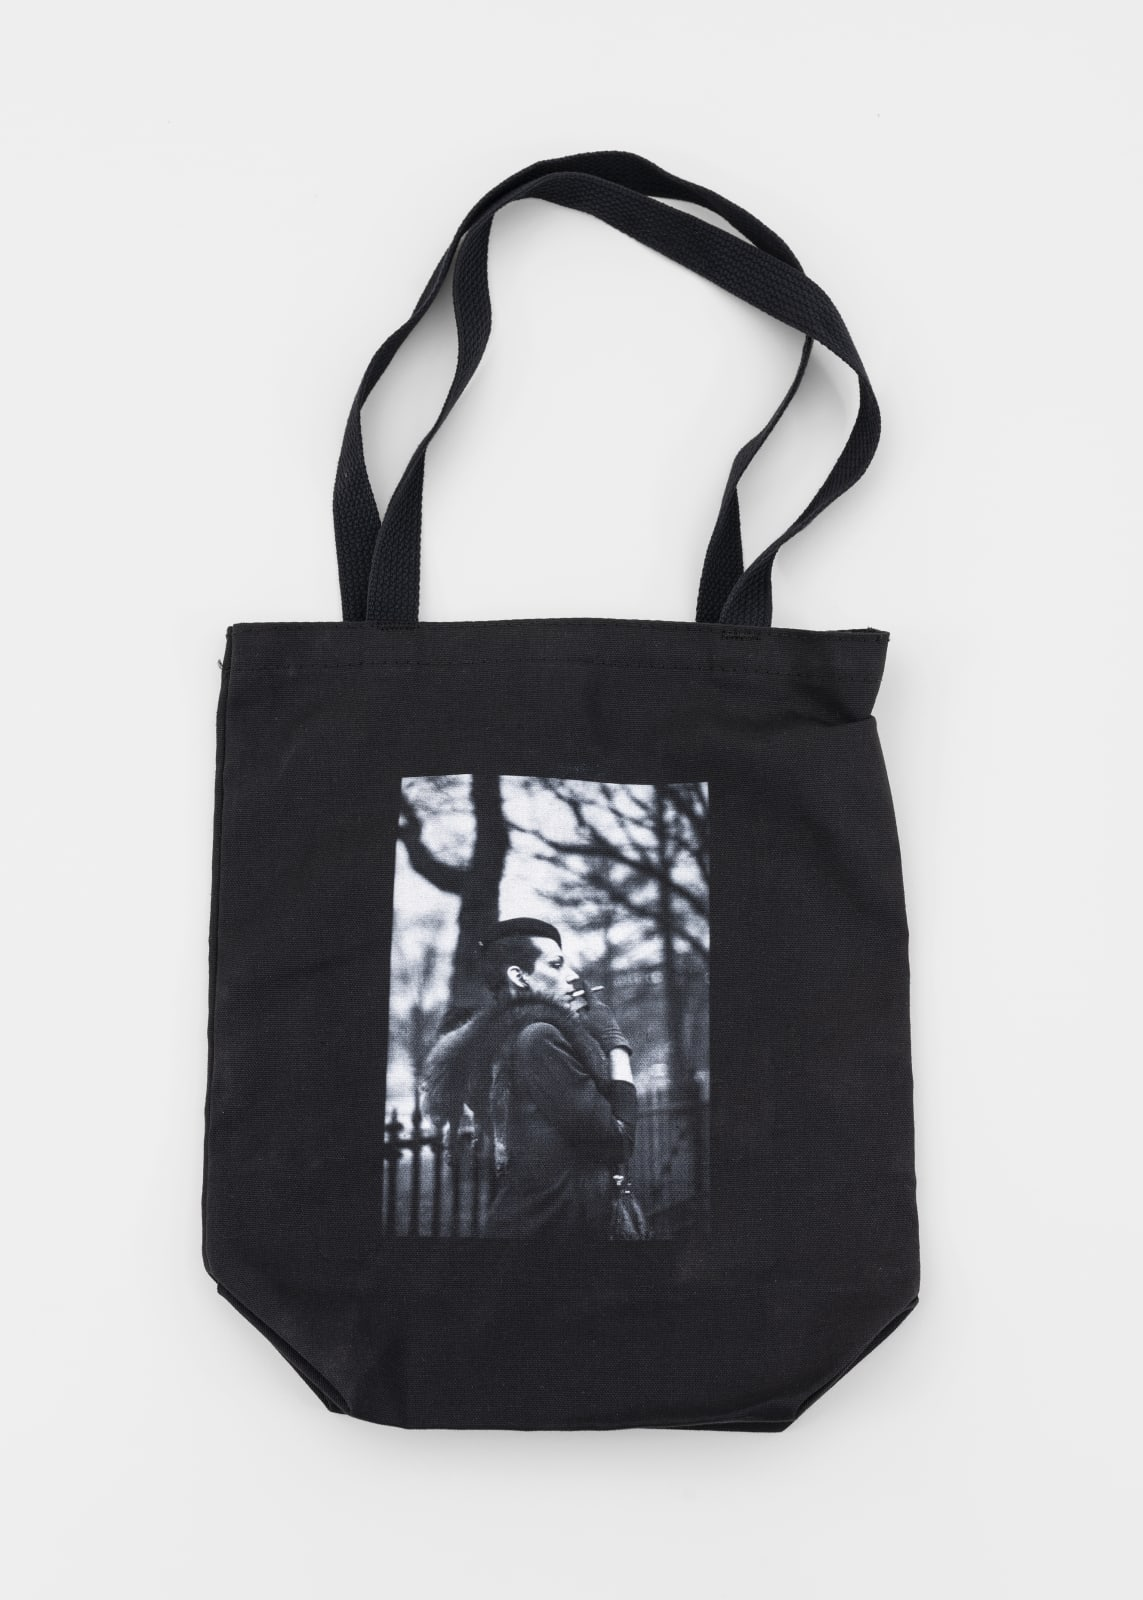 Nan Goldin Limited Edition Tote Bag for P.A.I.N.